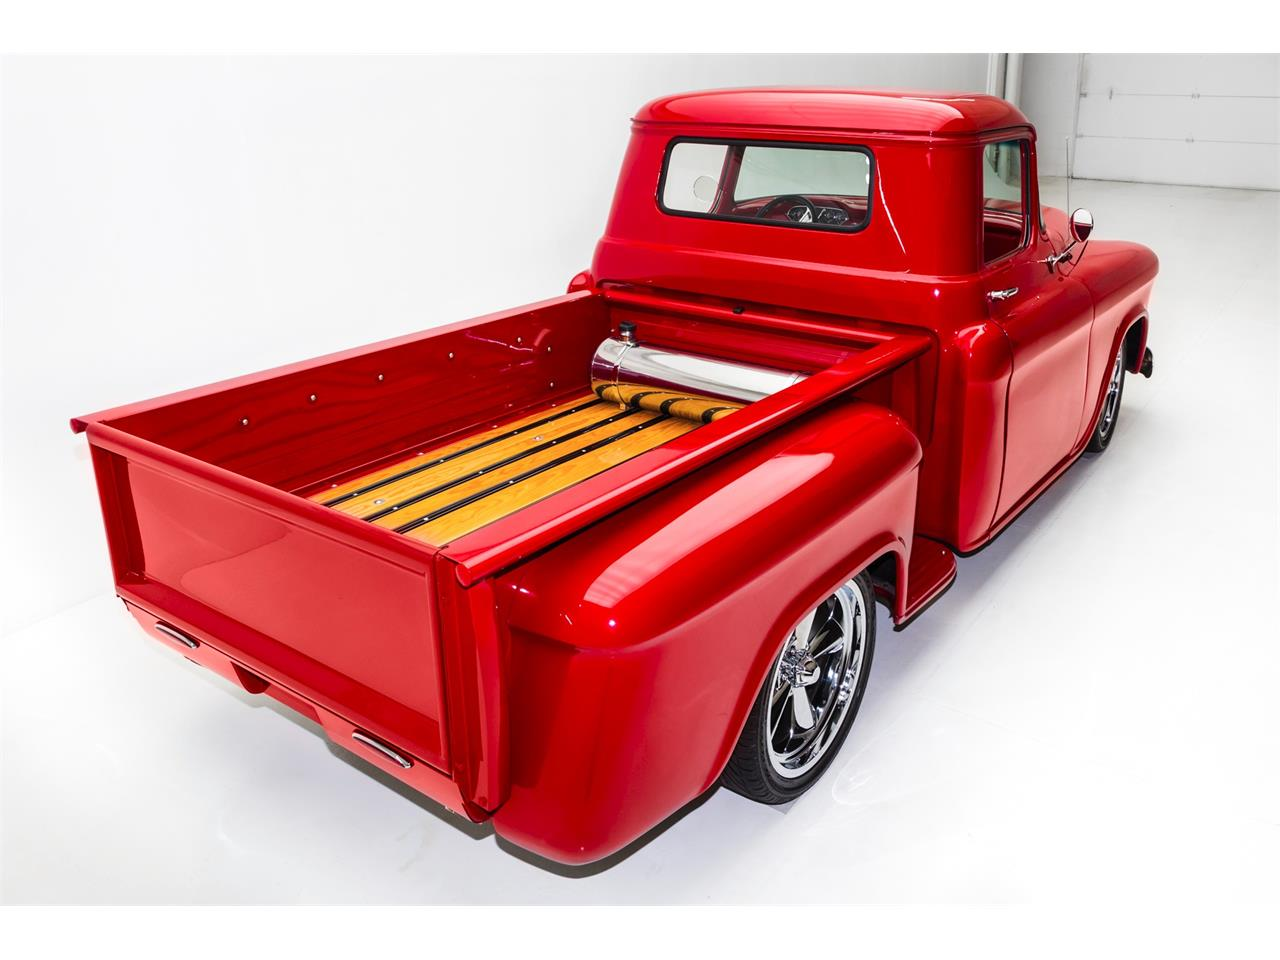 Large Picture of Classic 1957 Chevrolet Pickup - $59,900.00 - KM69